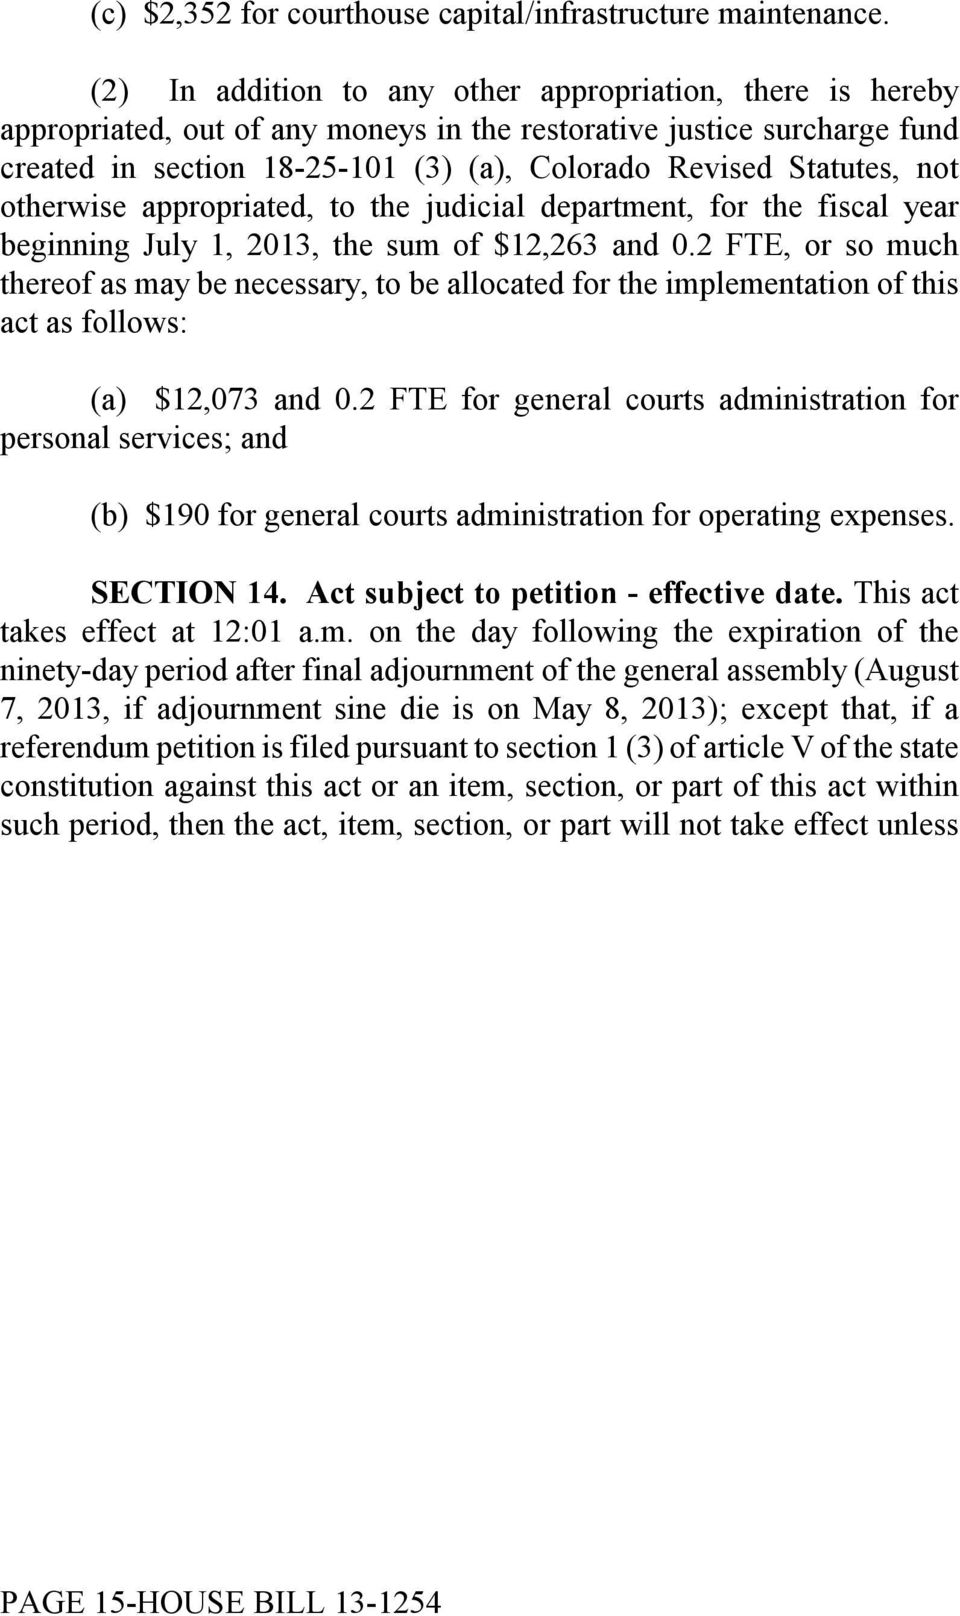 not otherwise appropriated, to the judicial department, for the fiscal year beginning July 1, 2013, the sum of $12,263 and 0.